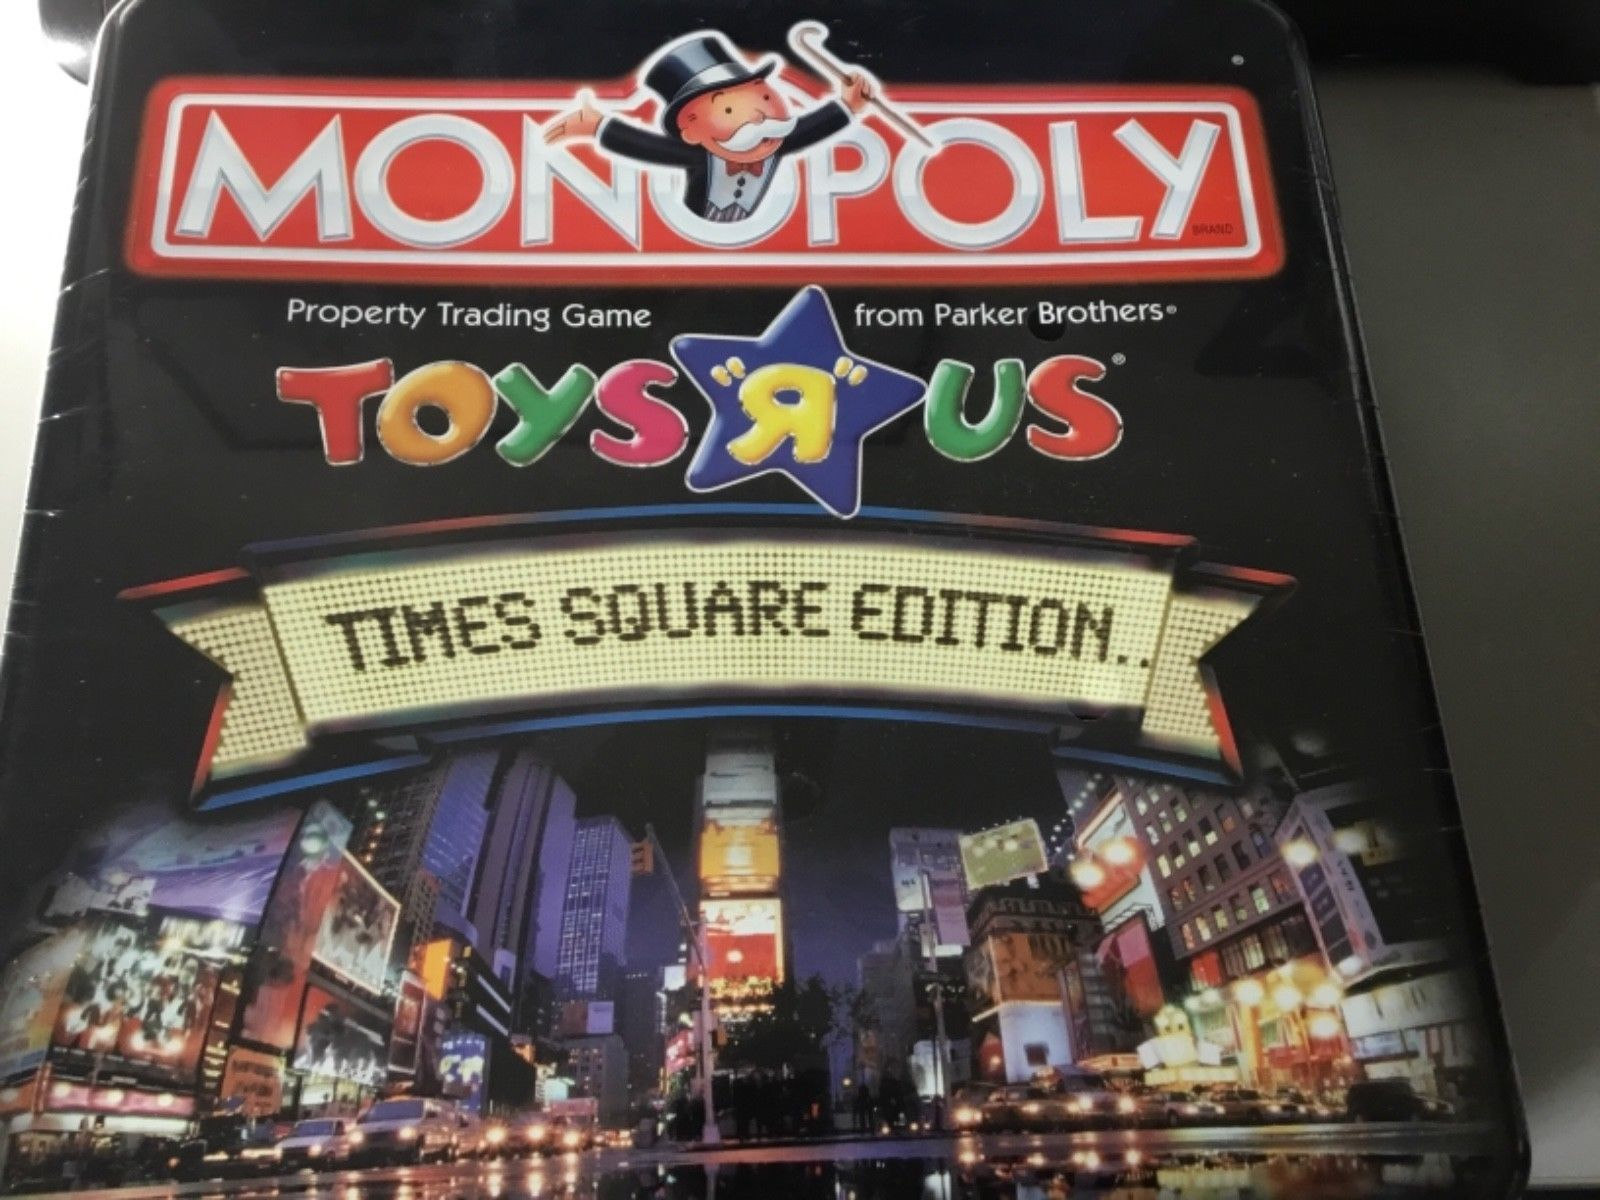 Monopoly Toys R Us Times Square Edition Game Tin Toys R Us Board Games Monopoly